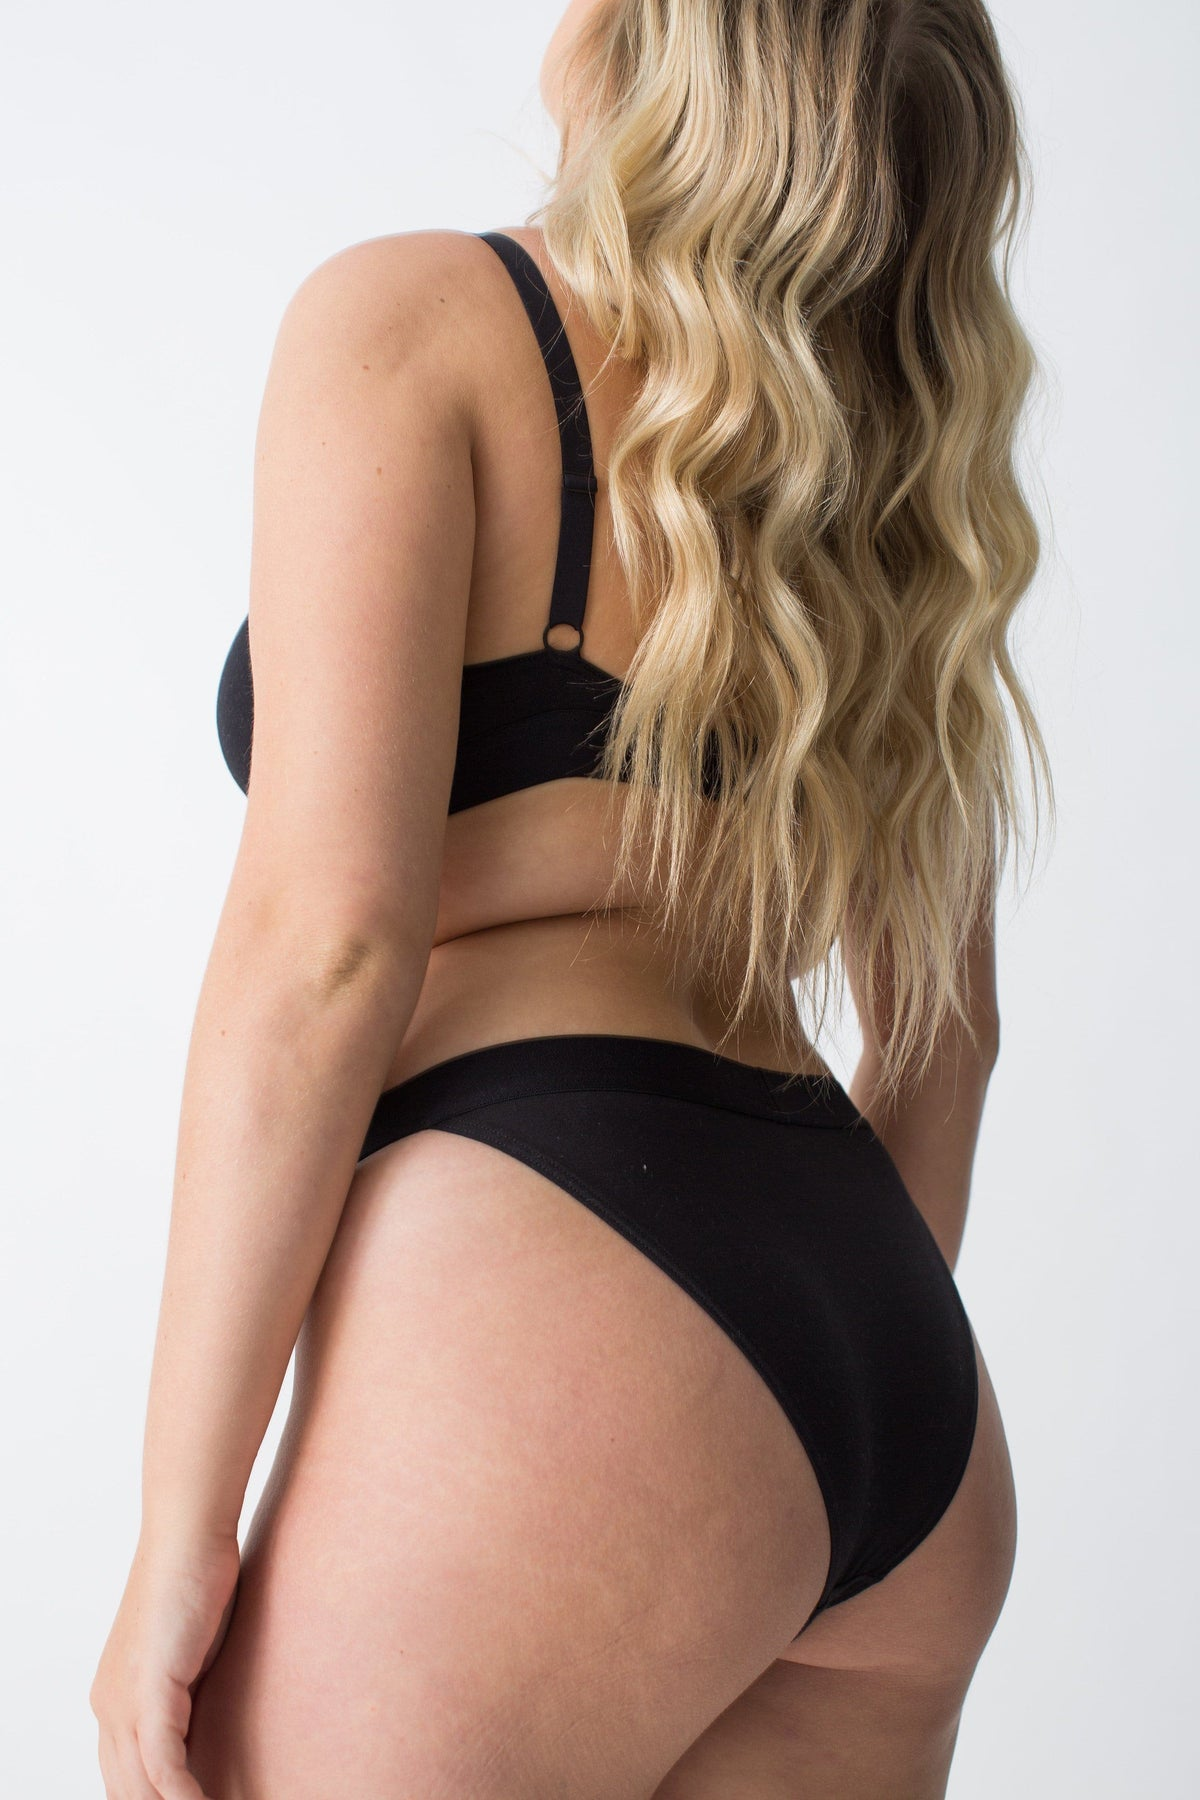 womanhood lingerie - organic cotton underwear - black pants - the nude label - ethical lingerie